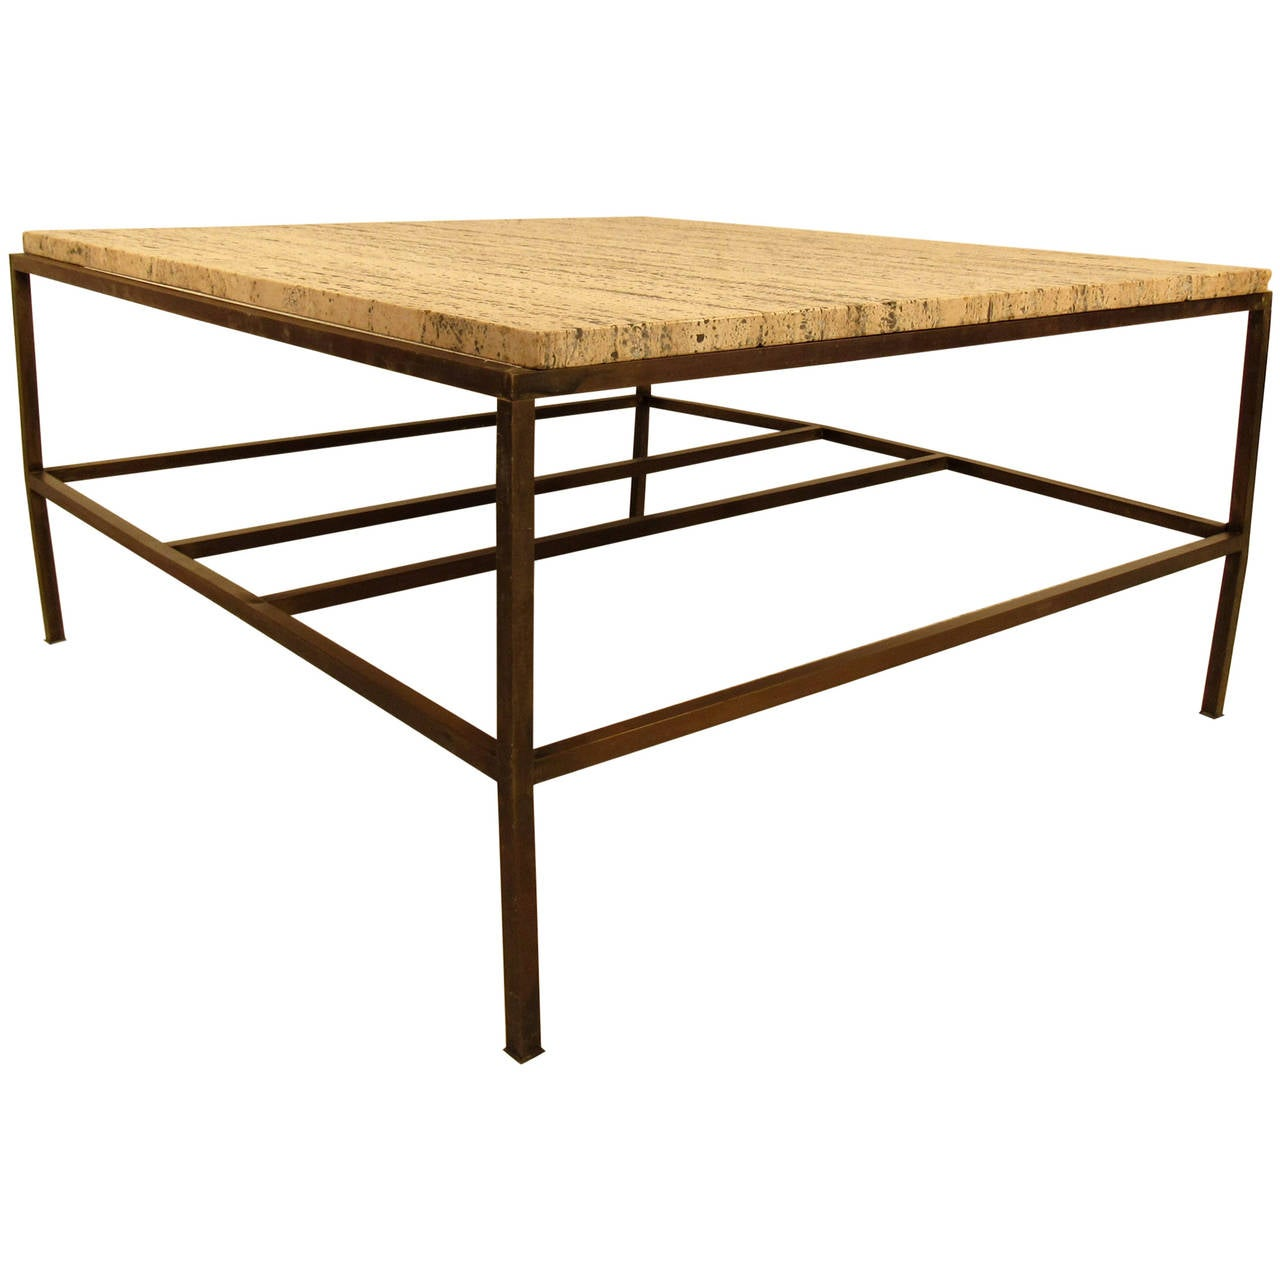 Mid Century Modern Marble Top Coffee Table: Mid Century Marble-Top Coffee Table By Paul McCobb For